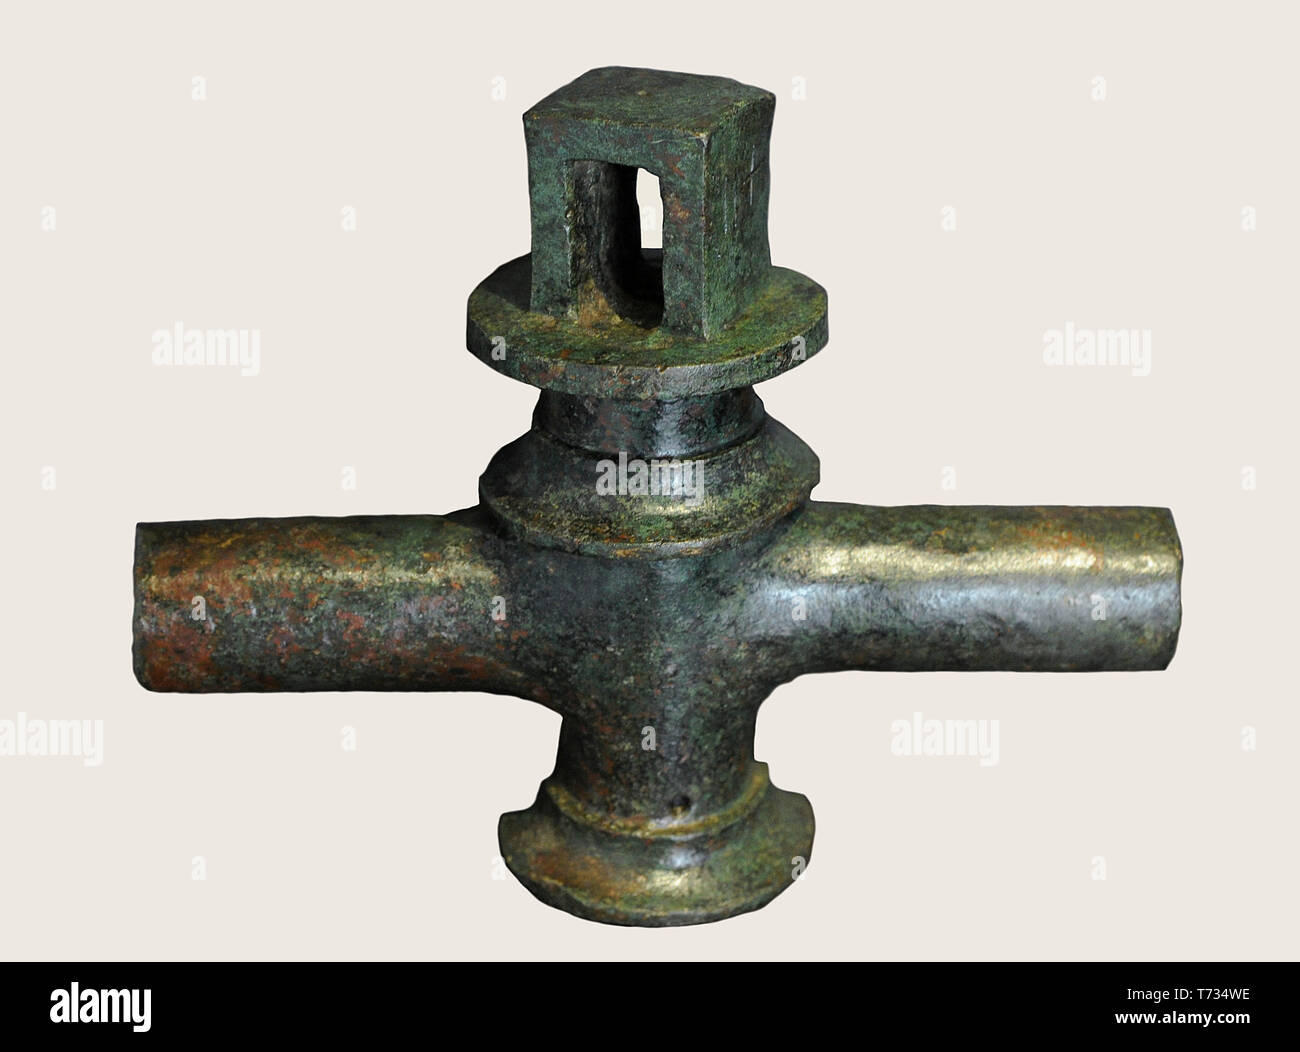 Water tap. 1st-2nd centuries AD. Bronze. National Archaeological Museum. Madrid. Spain. - Stock Image